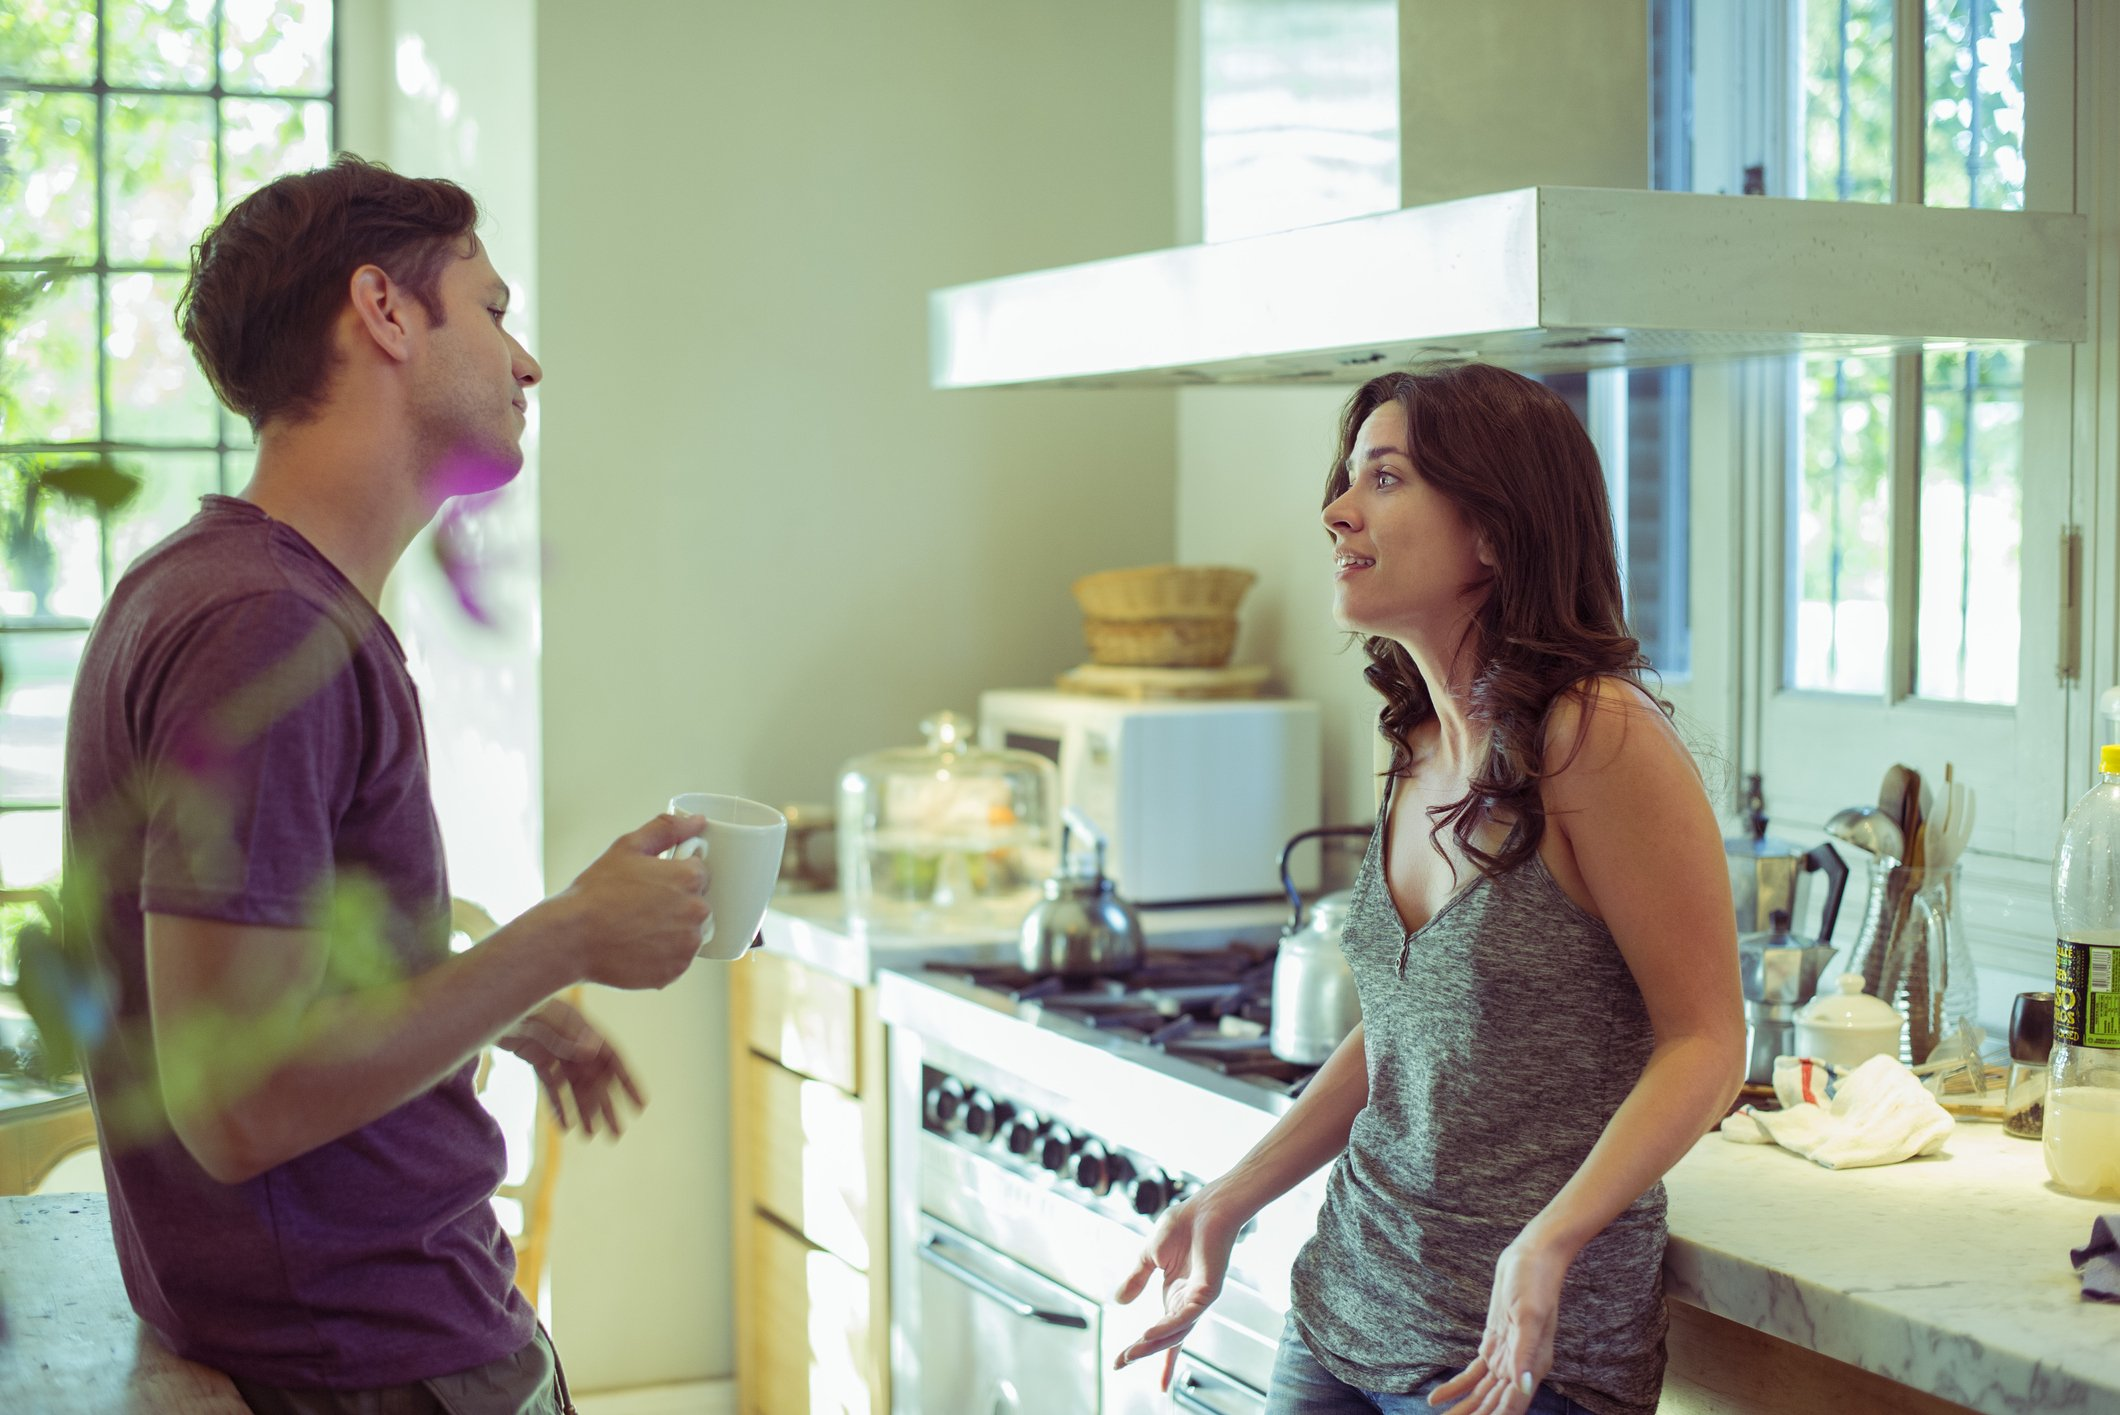 A man and a woman talking in kitchen | Photo: Getty Images